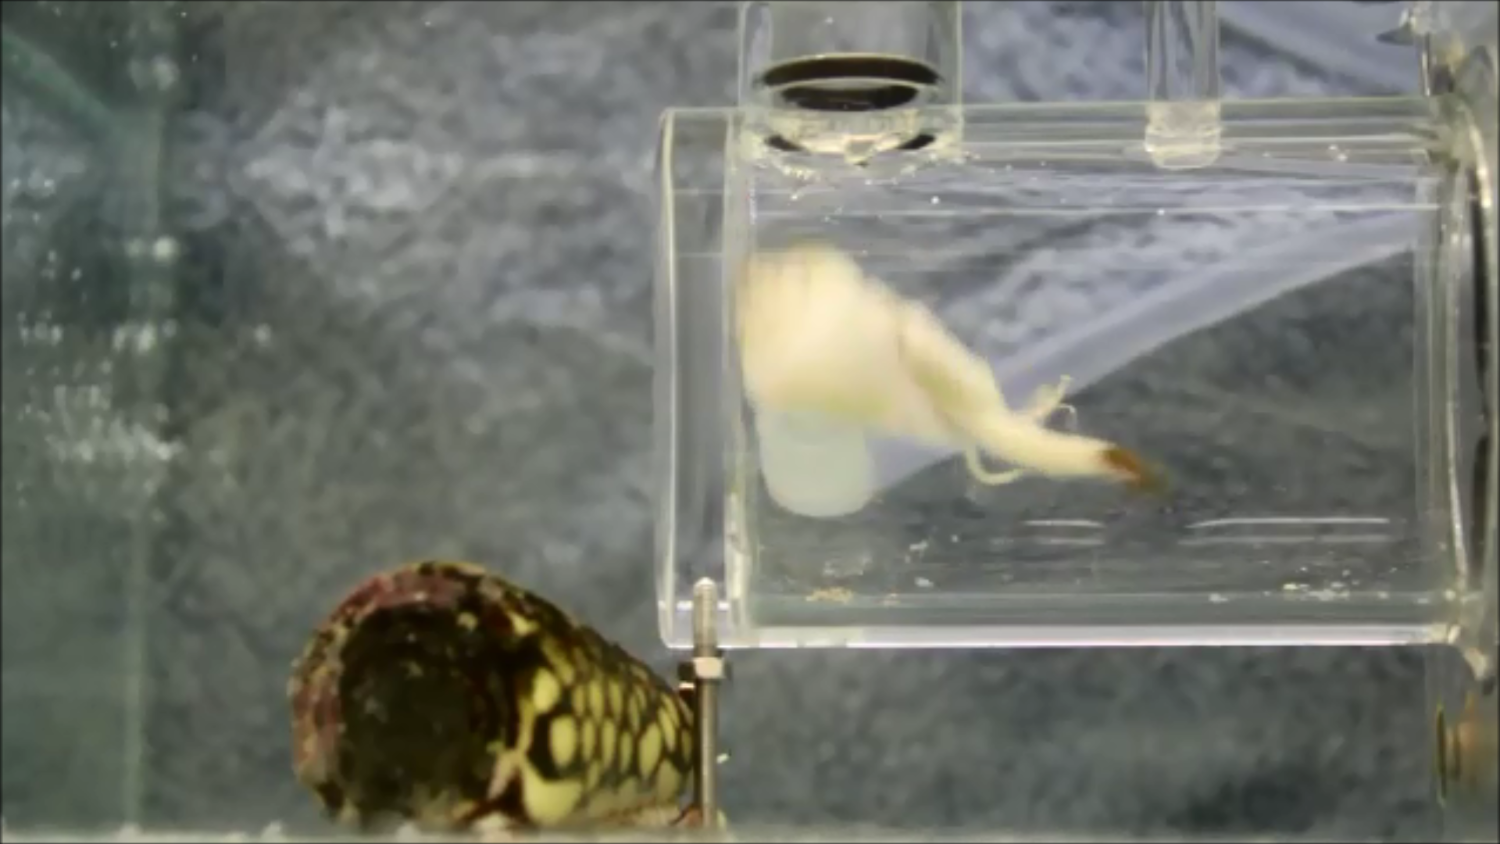 Jumping snail in respirometer during jump, cone snail to the left of the respirometer